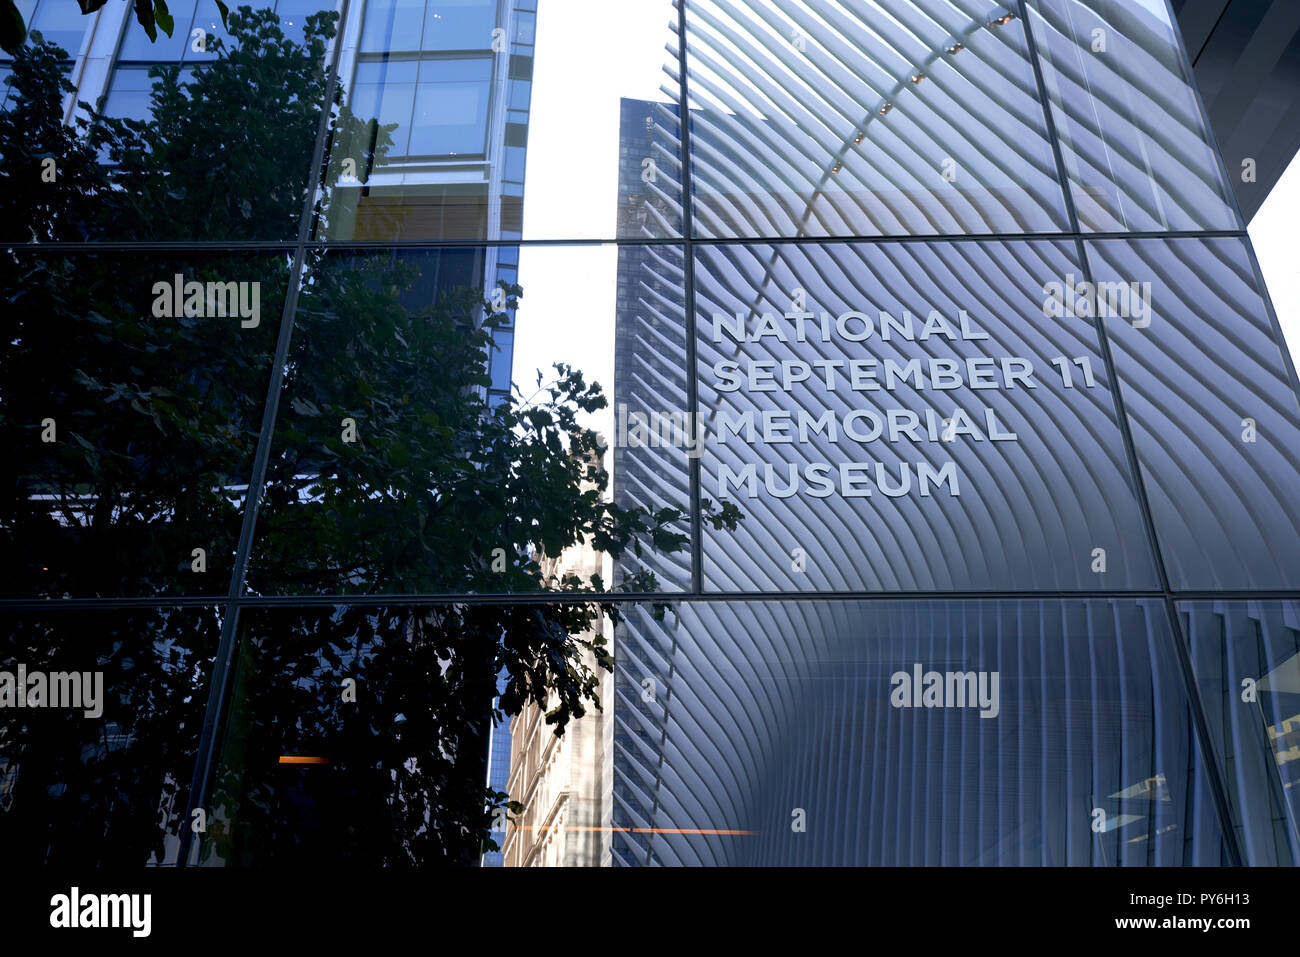 Exterior of the National September 11 Memorial Museum in New York City. - Stock Image